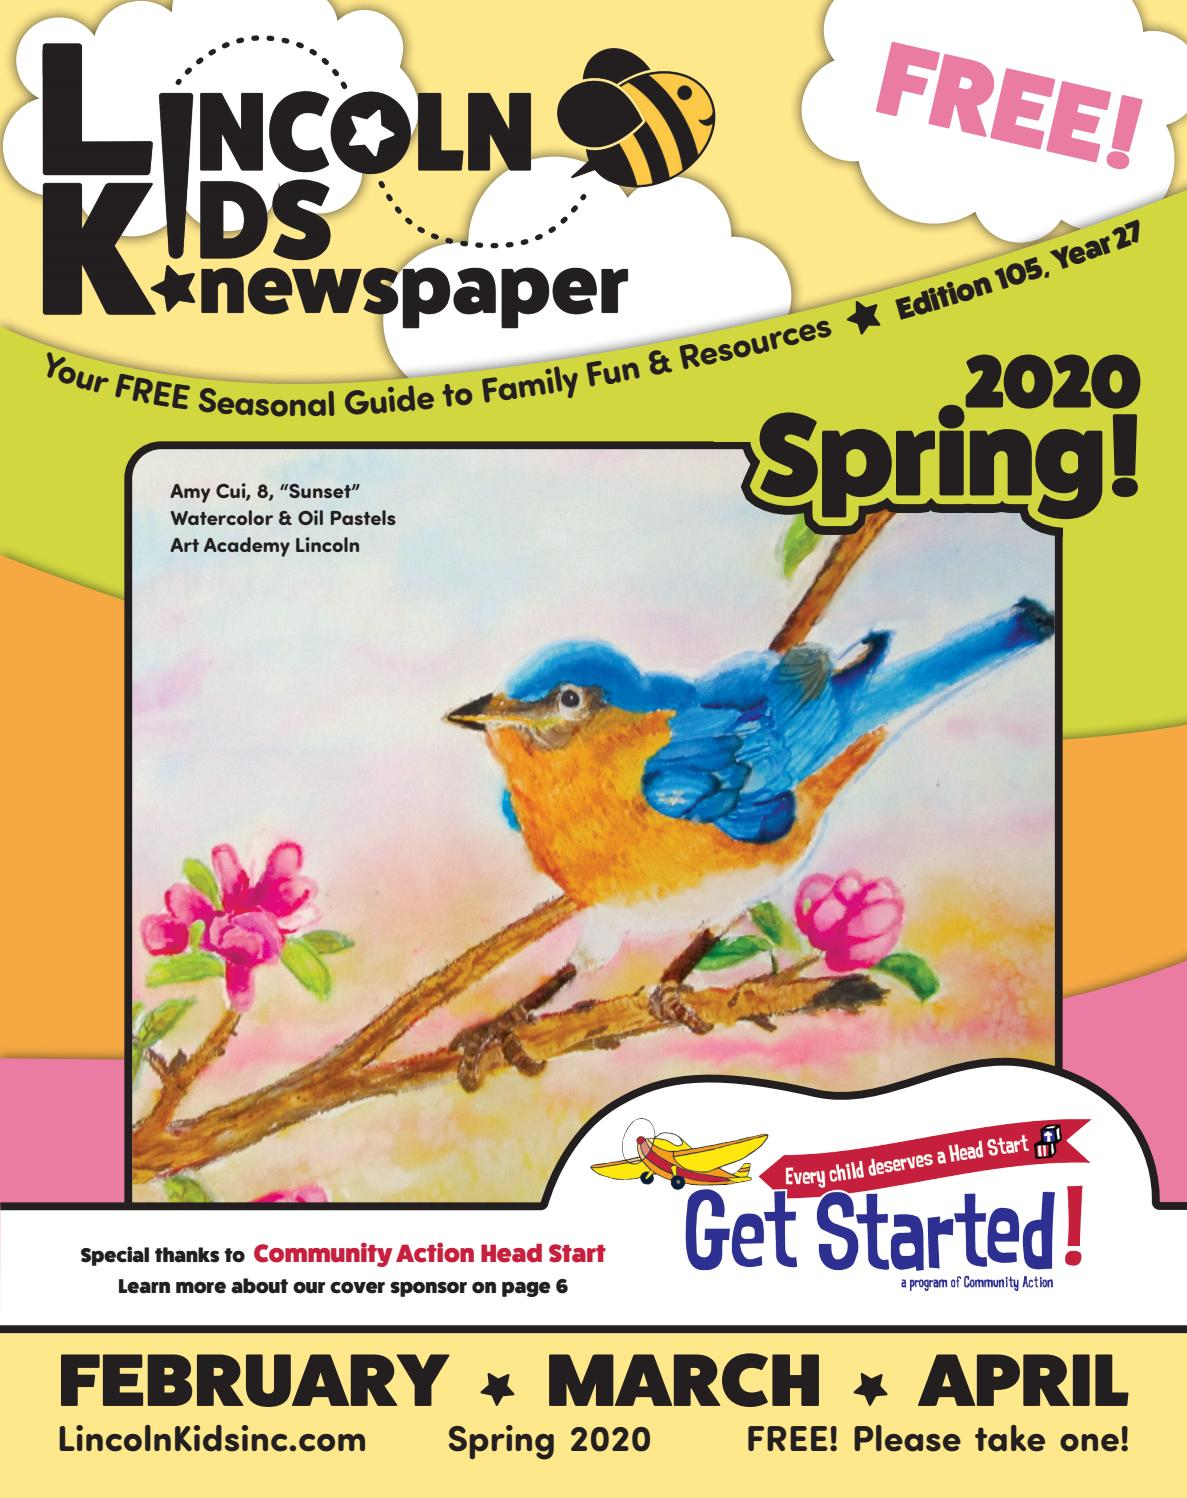 8 ft rolled bamboo fencing 8 x 8 buy online forever.htm lincoln kids  newspaper     spring 2020     february  march  april by  lincoln kids  newspaper     spring 2020